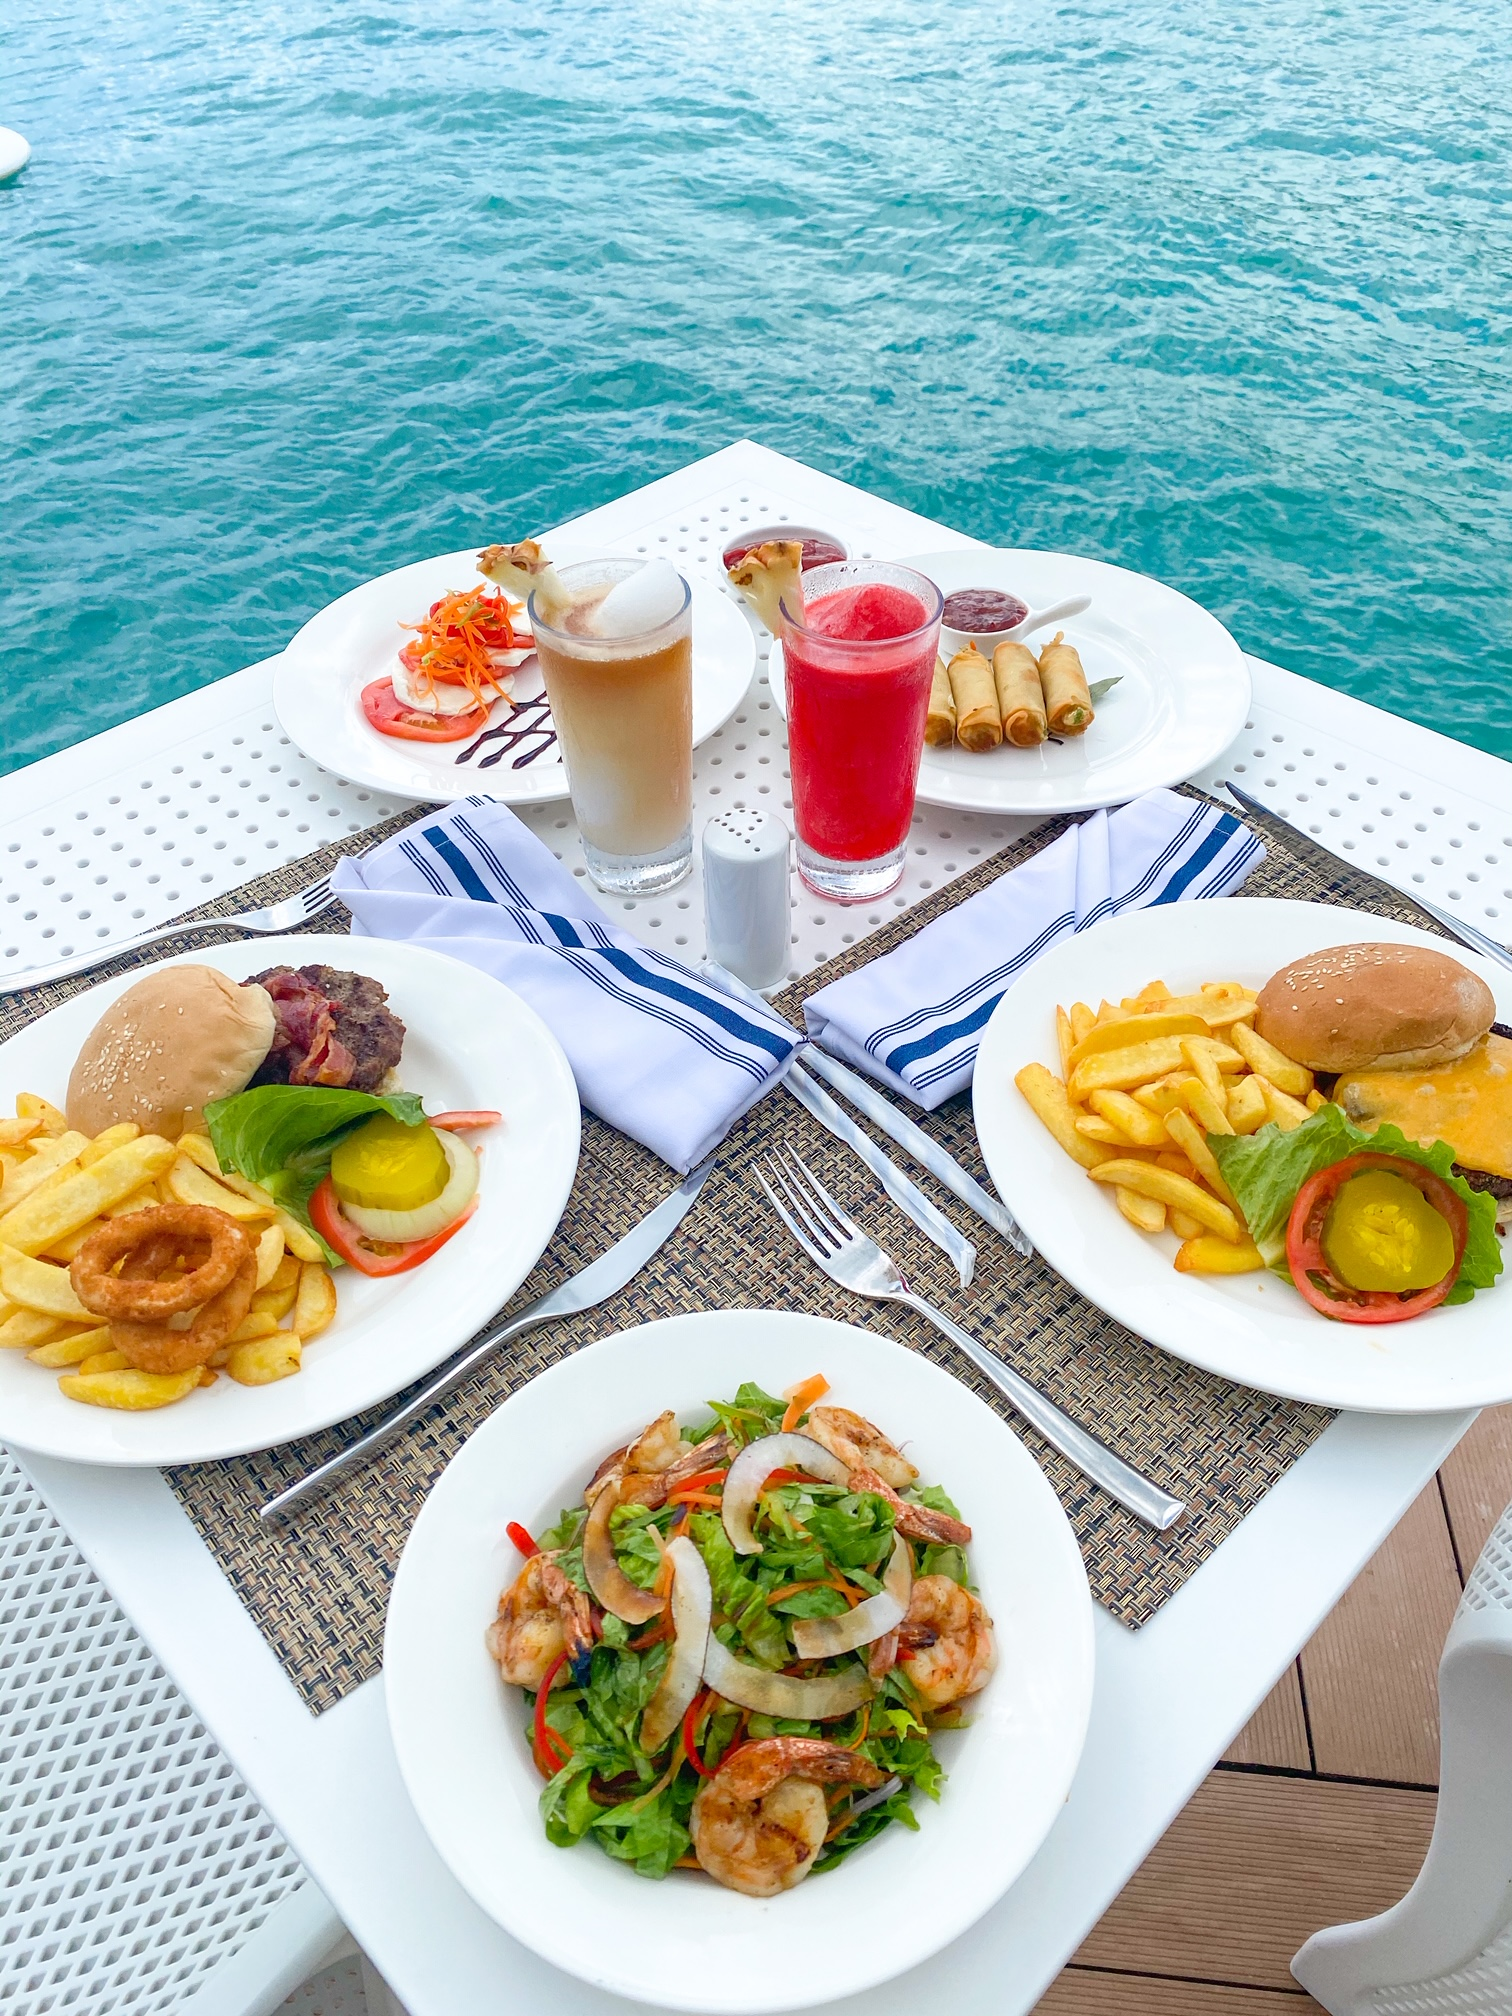 Several plates of food and a few drinks on a white table with the ocean in the background